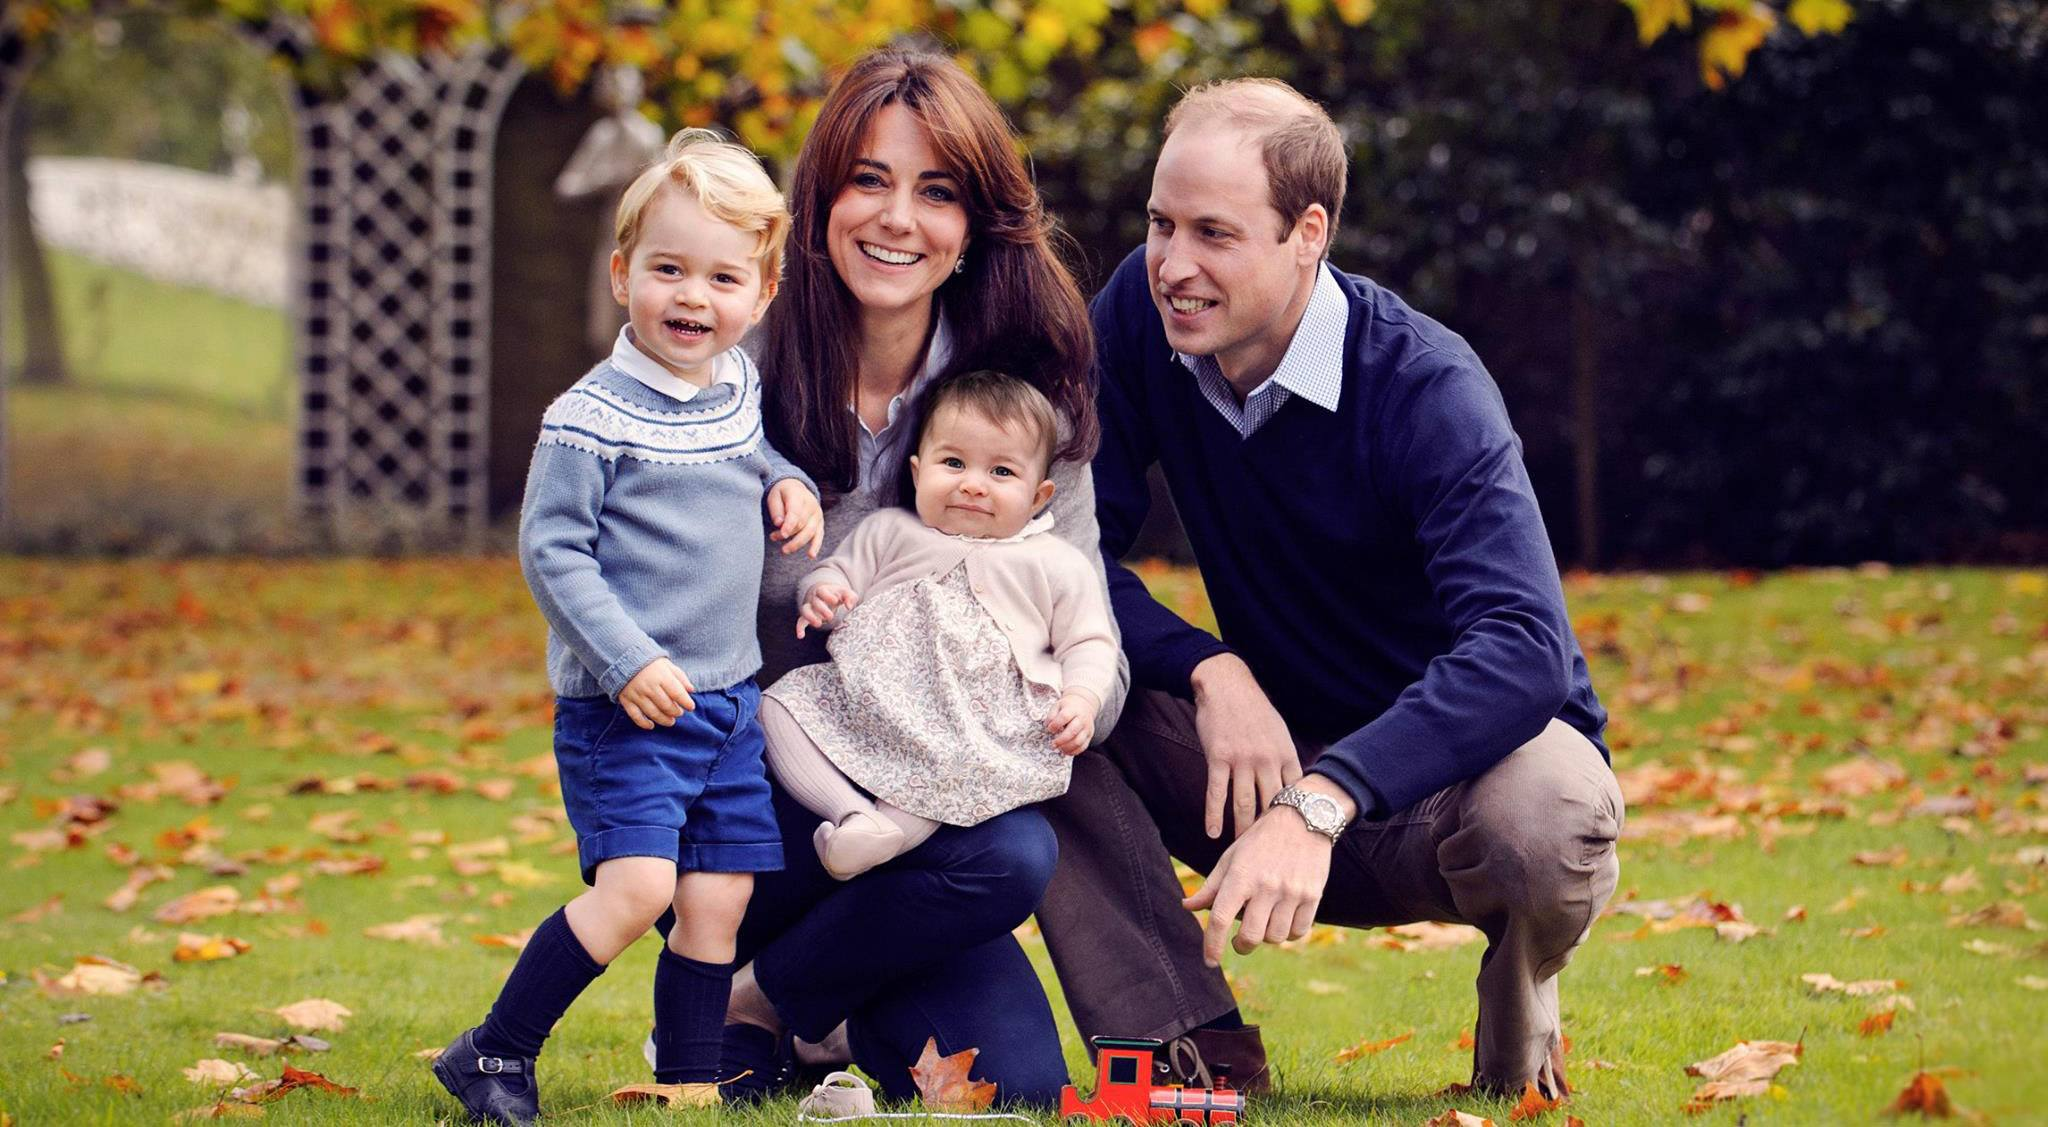 Duke and duchess of cambridge with prince george and princess charlotte the royal familyfacebook